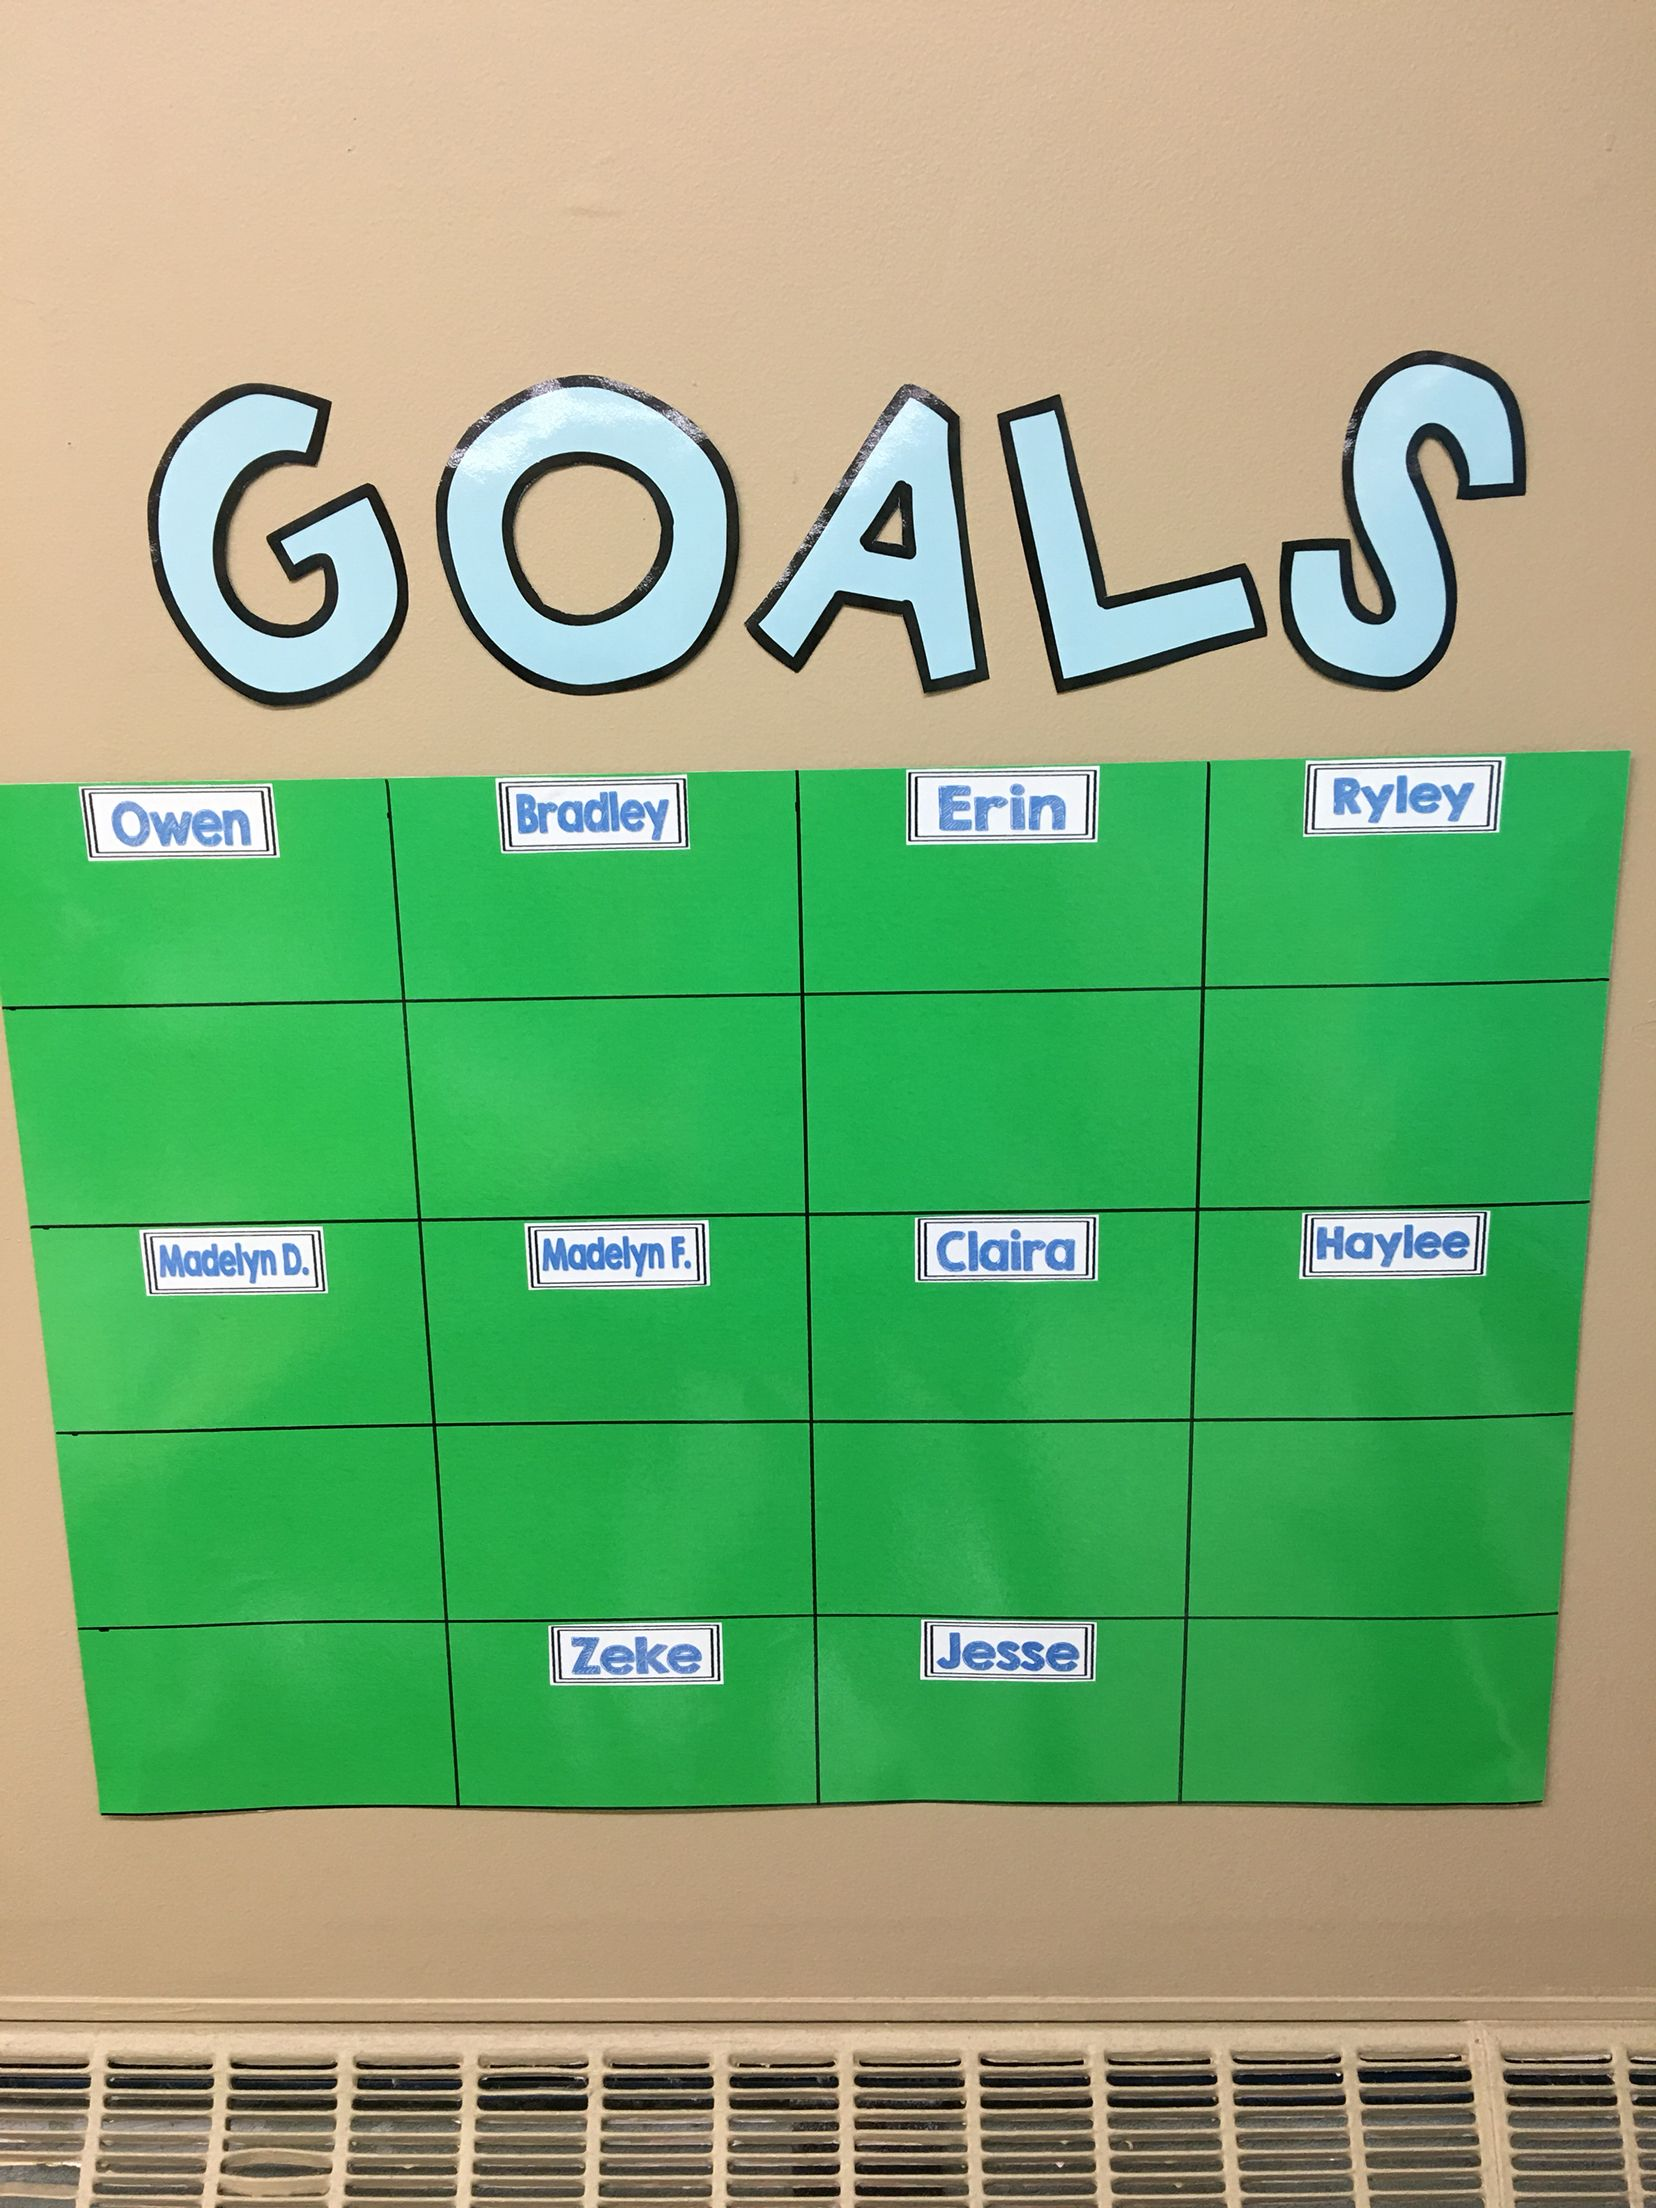 Small Group Goals Board Laminate Large Poster Board And Split Into Squares Write Student Names In Squares And Work With Student Goals Small Groups Goal Board